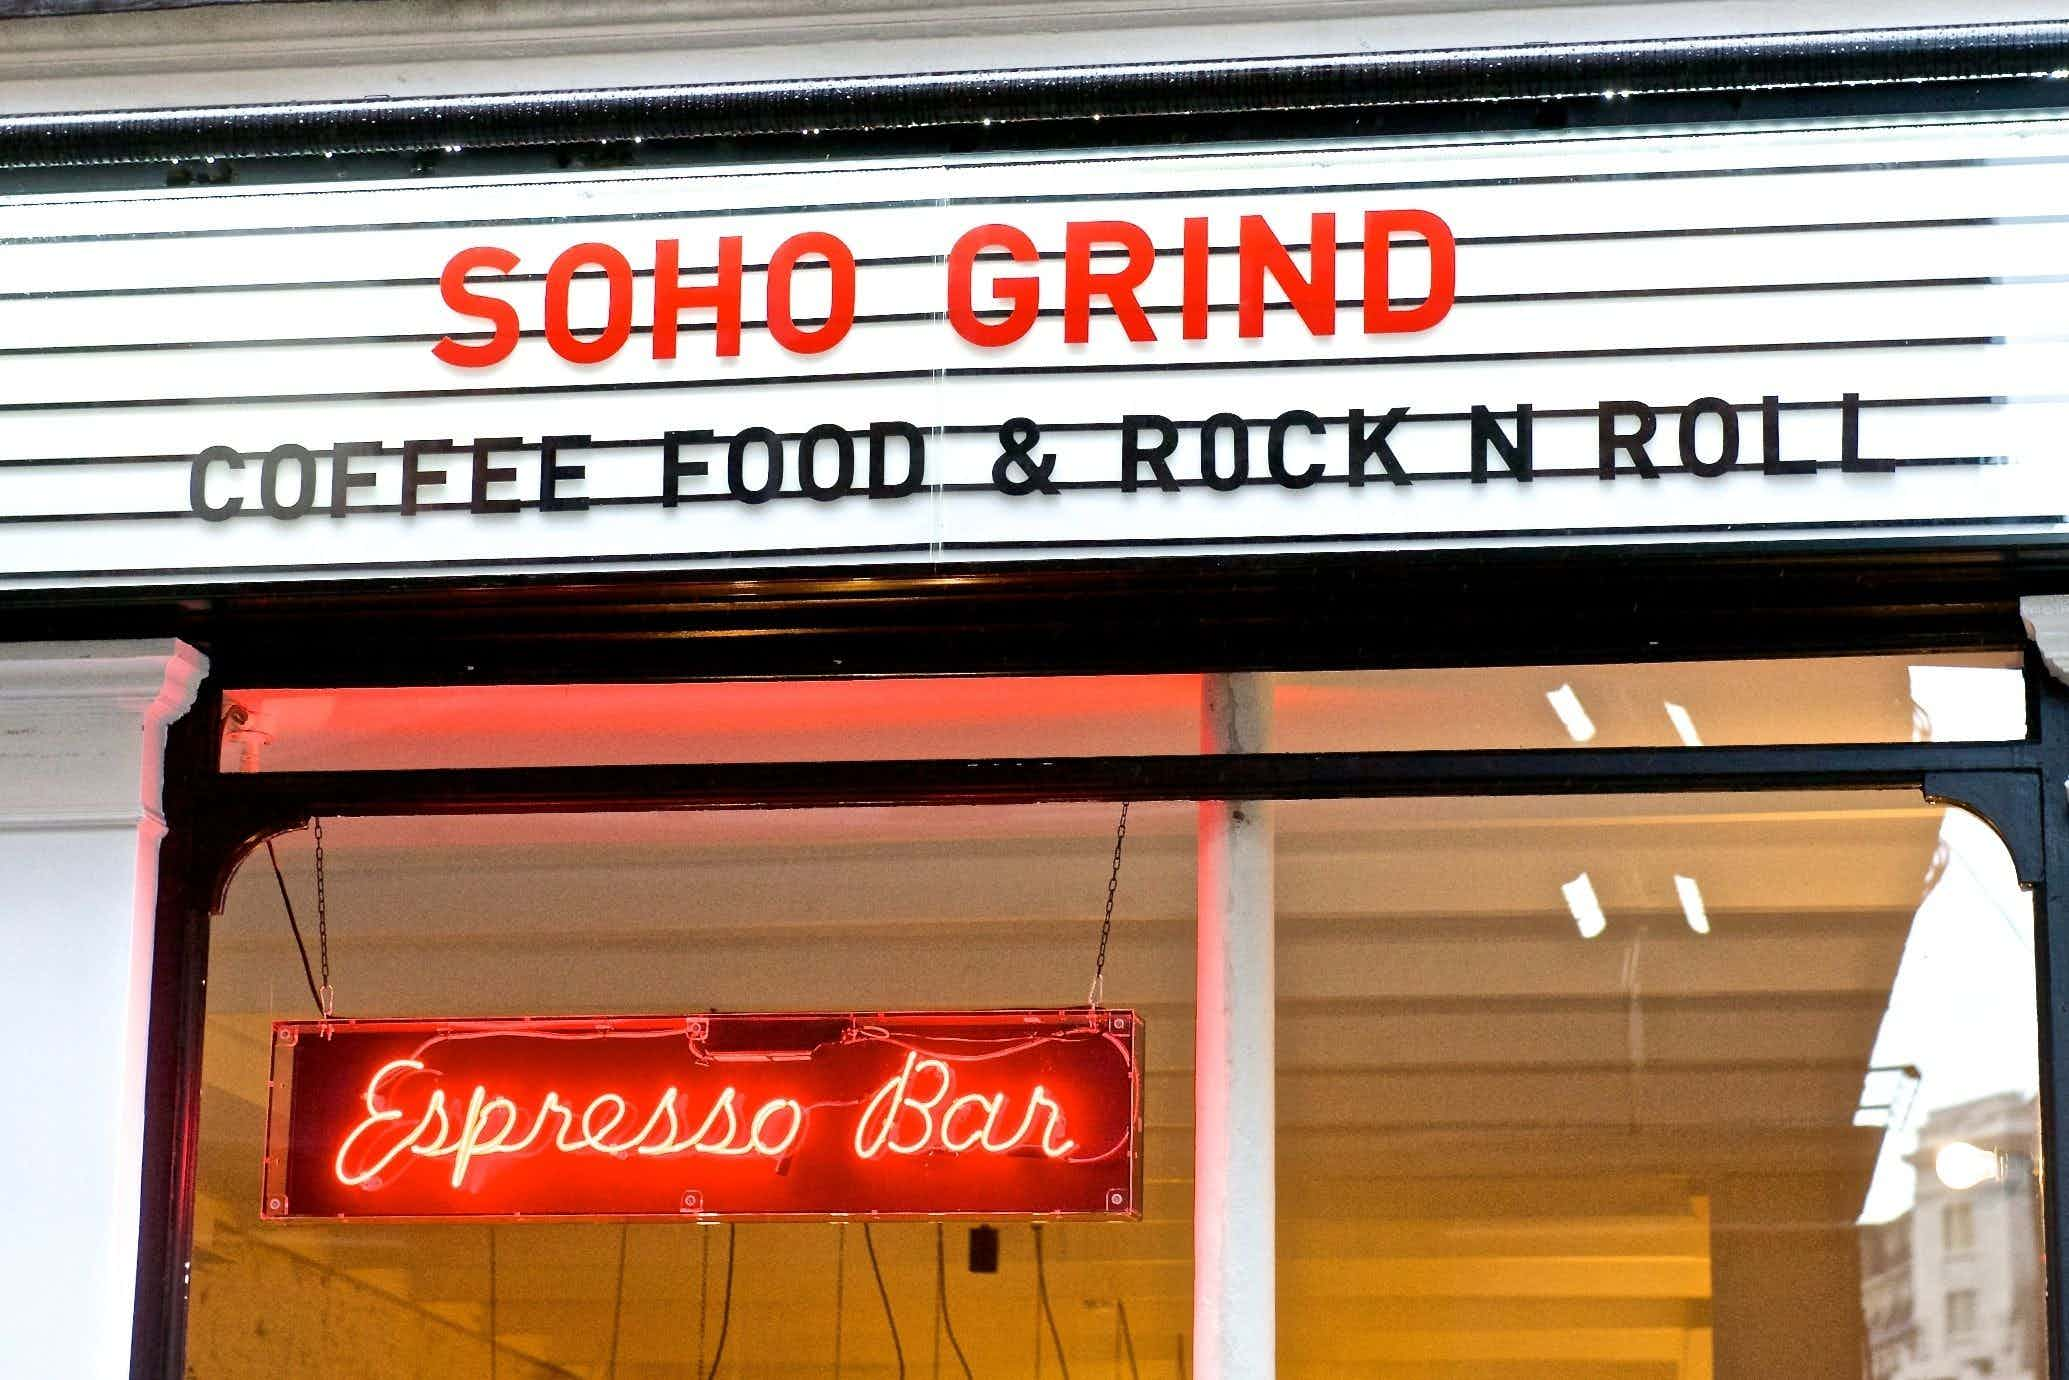 Whole Venue, Soho Grind